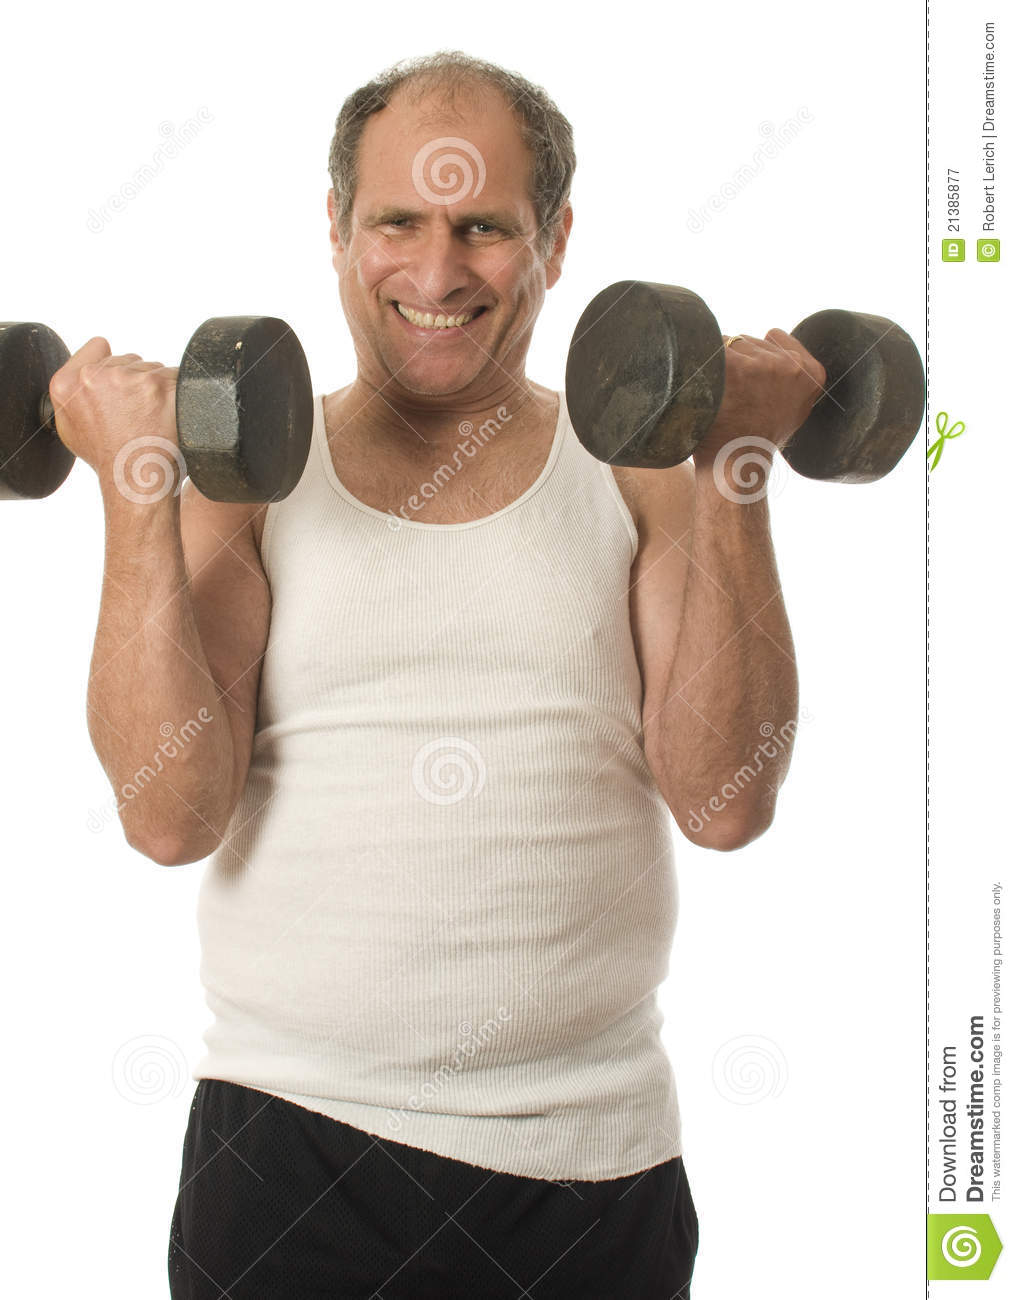 Boy Working Out With Weights Stock Photo